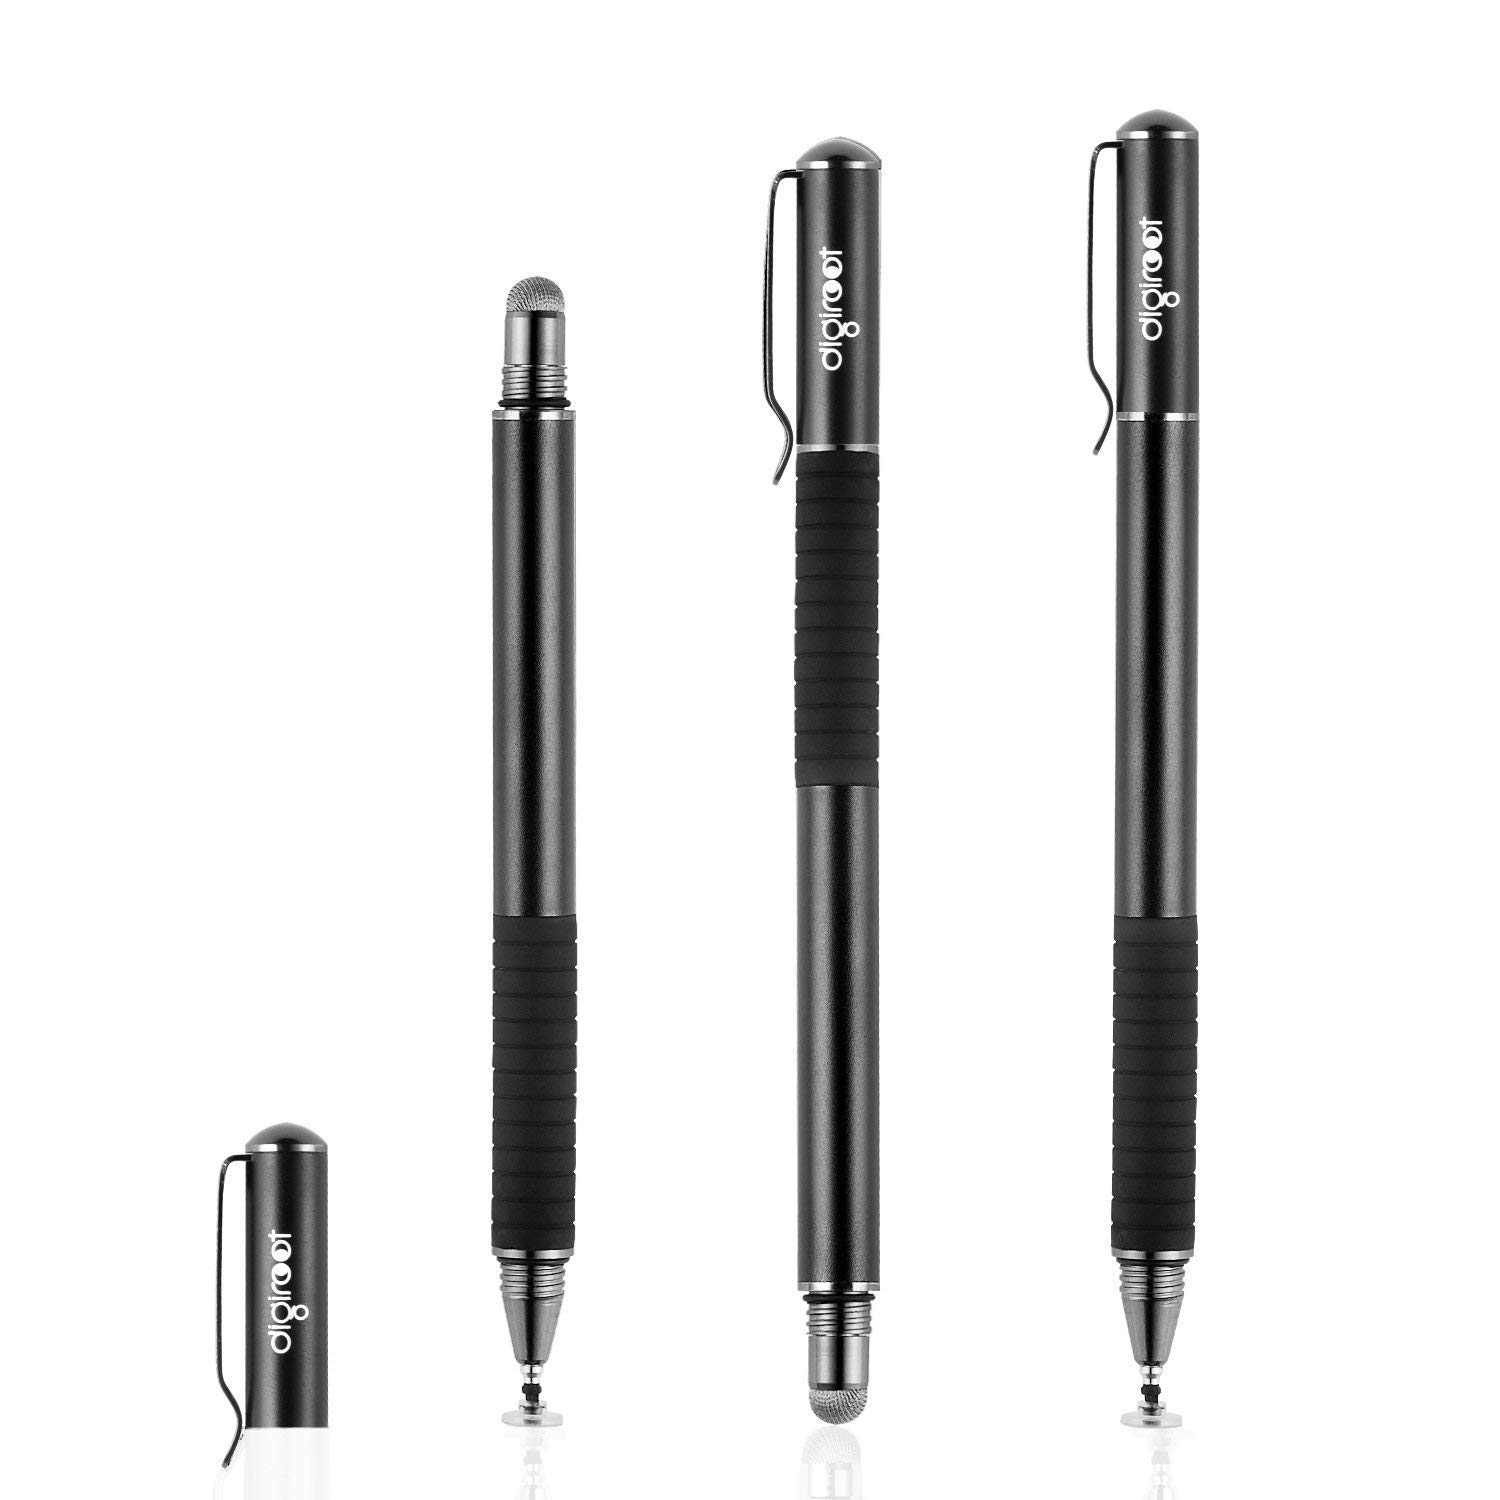 Drawing 4 Discs, 2 Fiber Tips Included Digiroot 2-in-1 Precision Stylus Disc Tip With Fiber Tip For Notes-taking 2Pcs Black//Silver Navigation on Touch Screen -